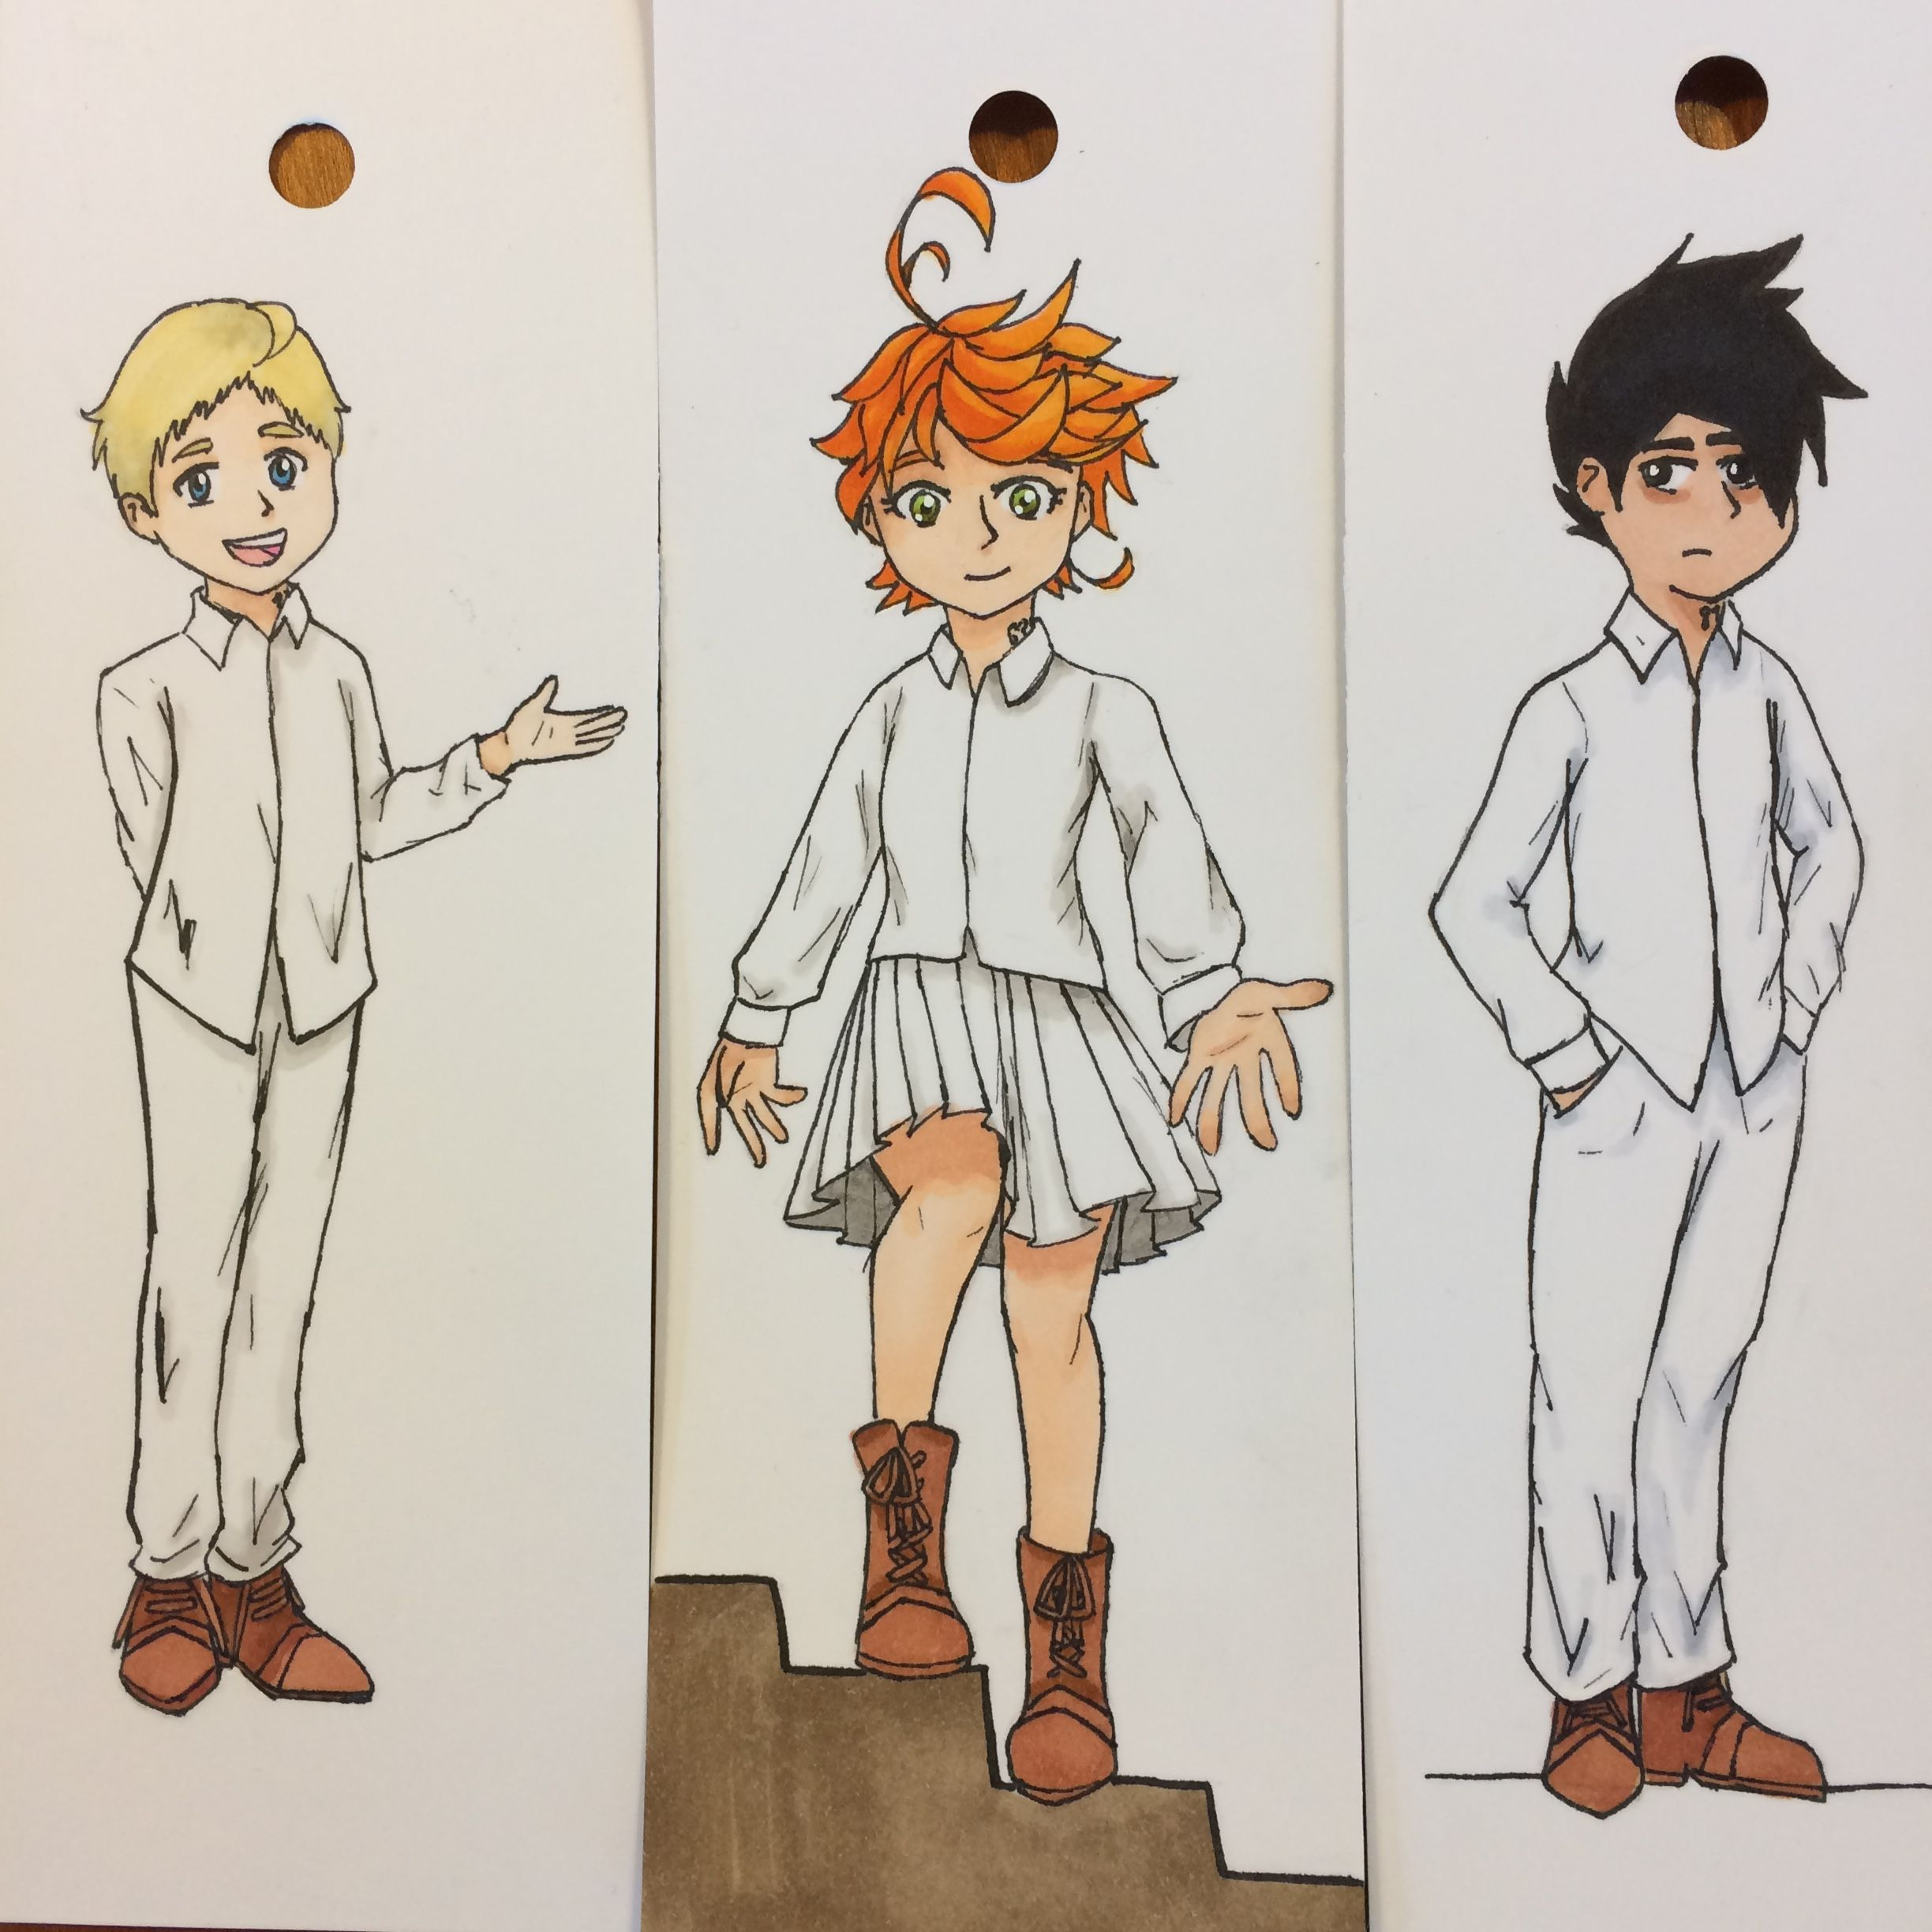 Norman Emma And Ray From The Promised Neverland